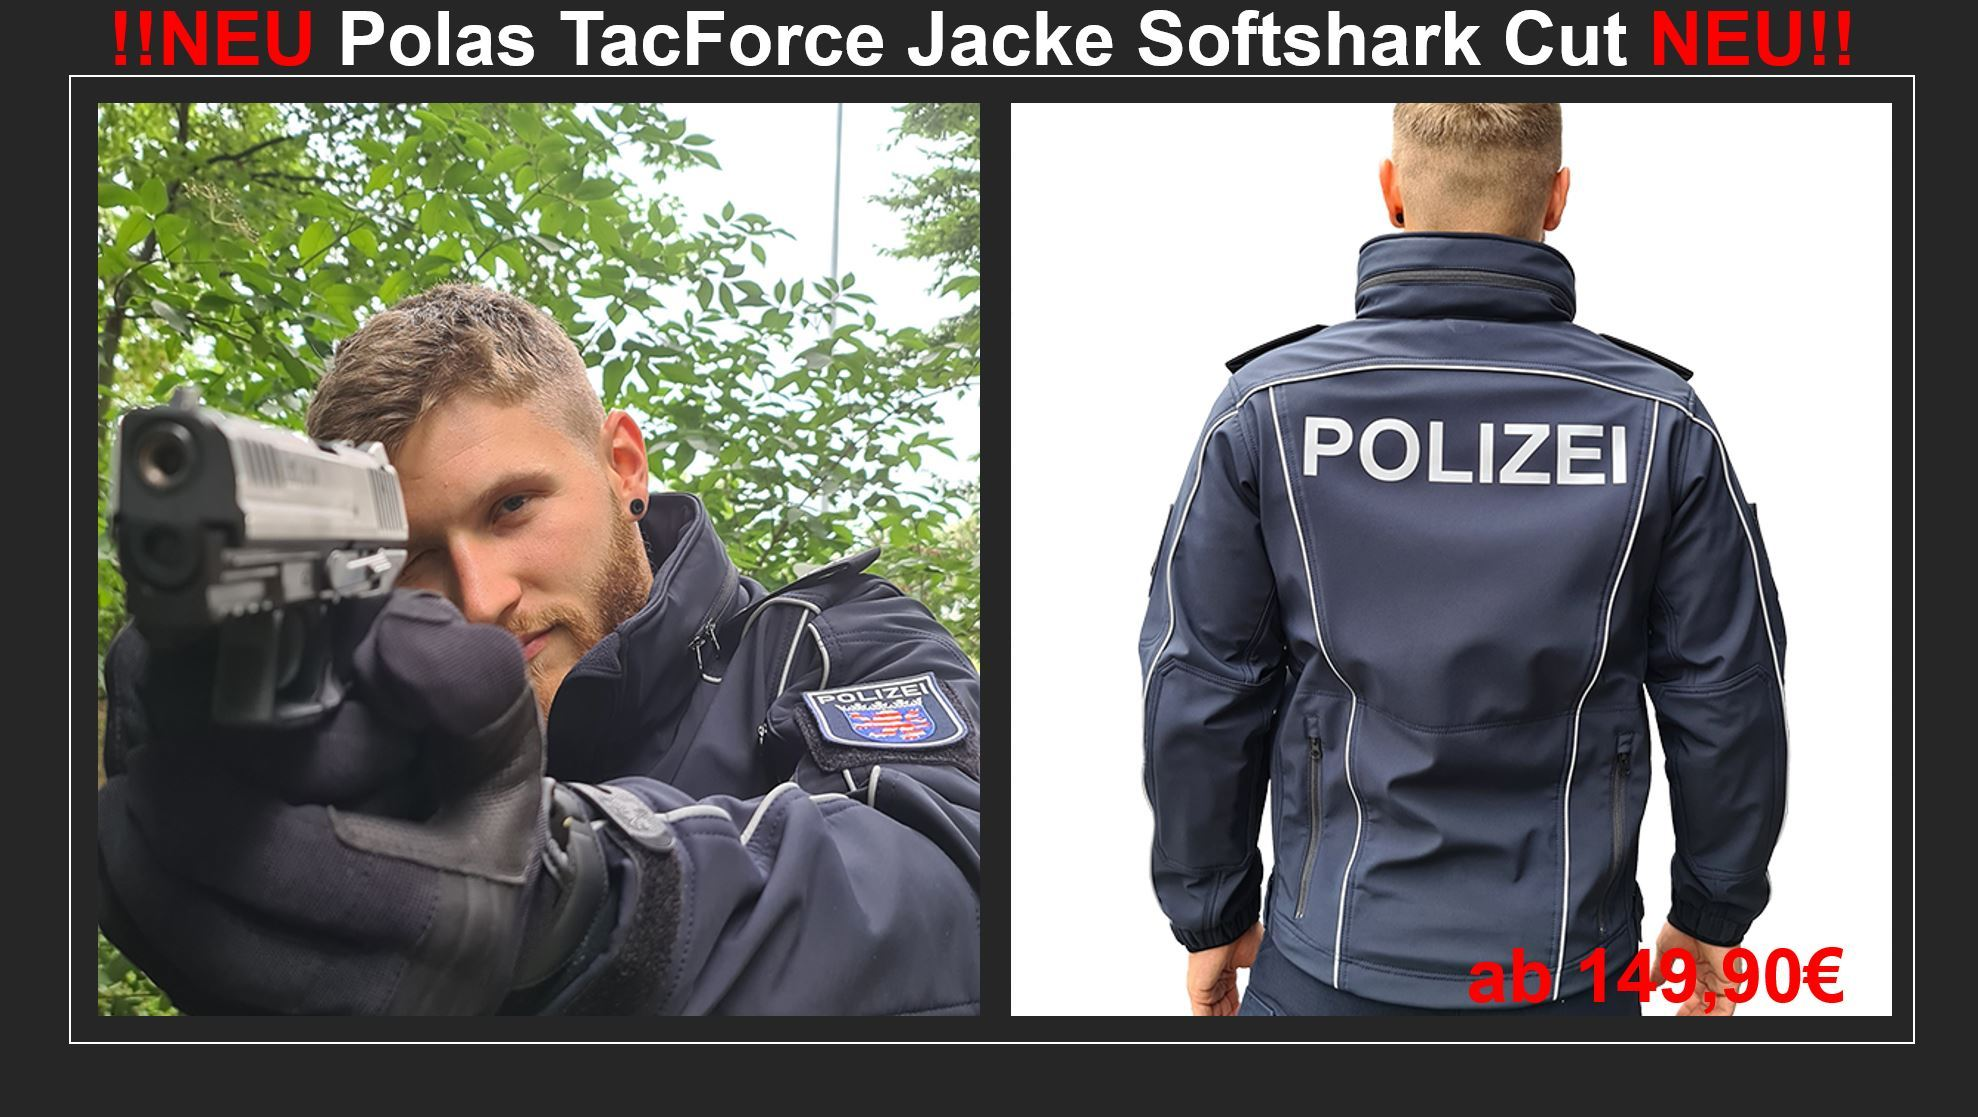 tac_force_softshark_01